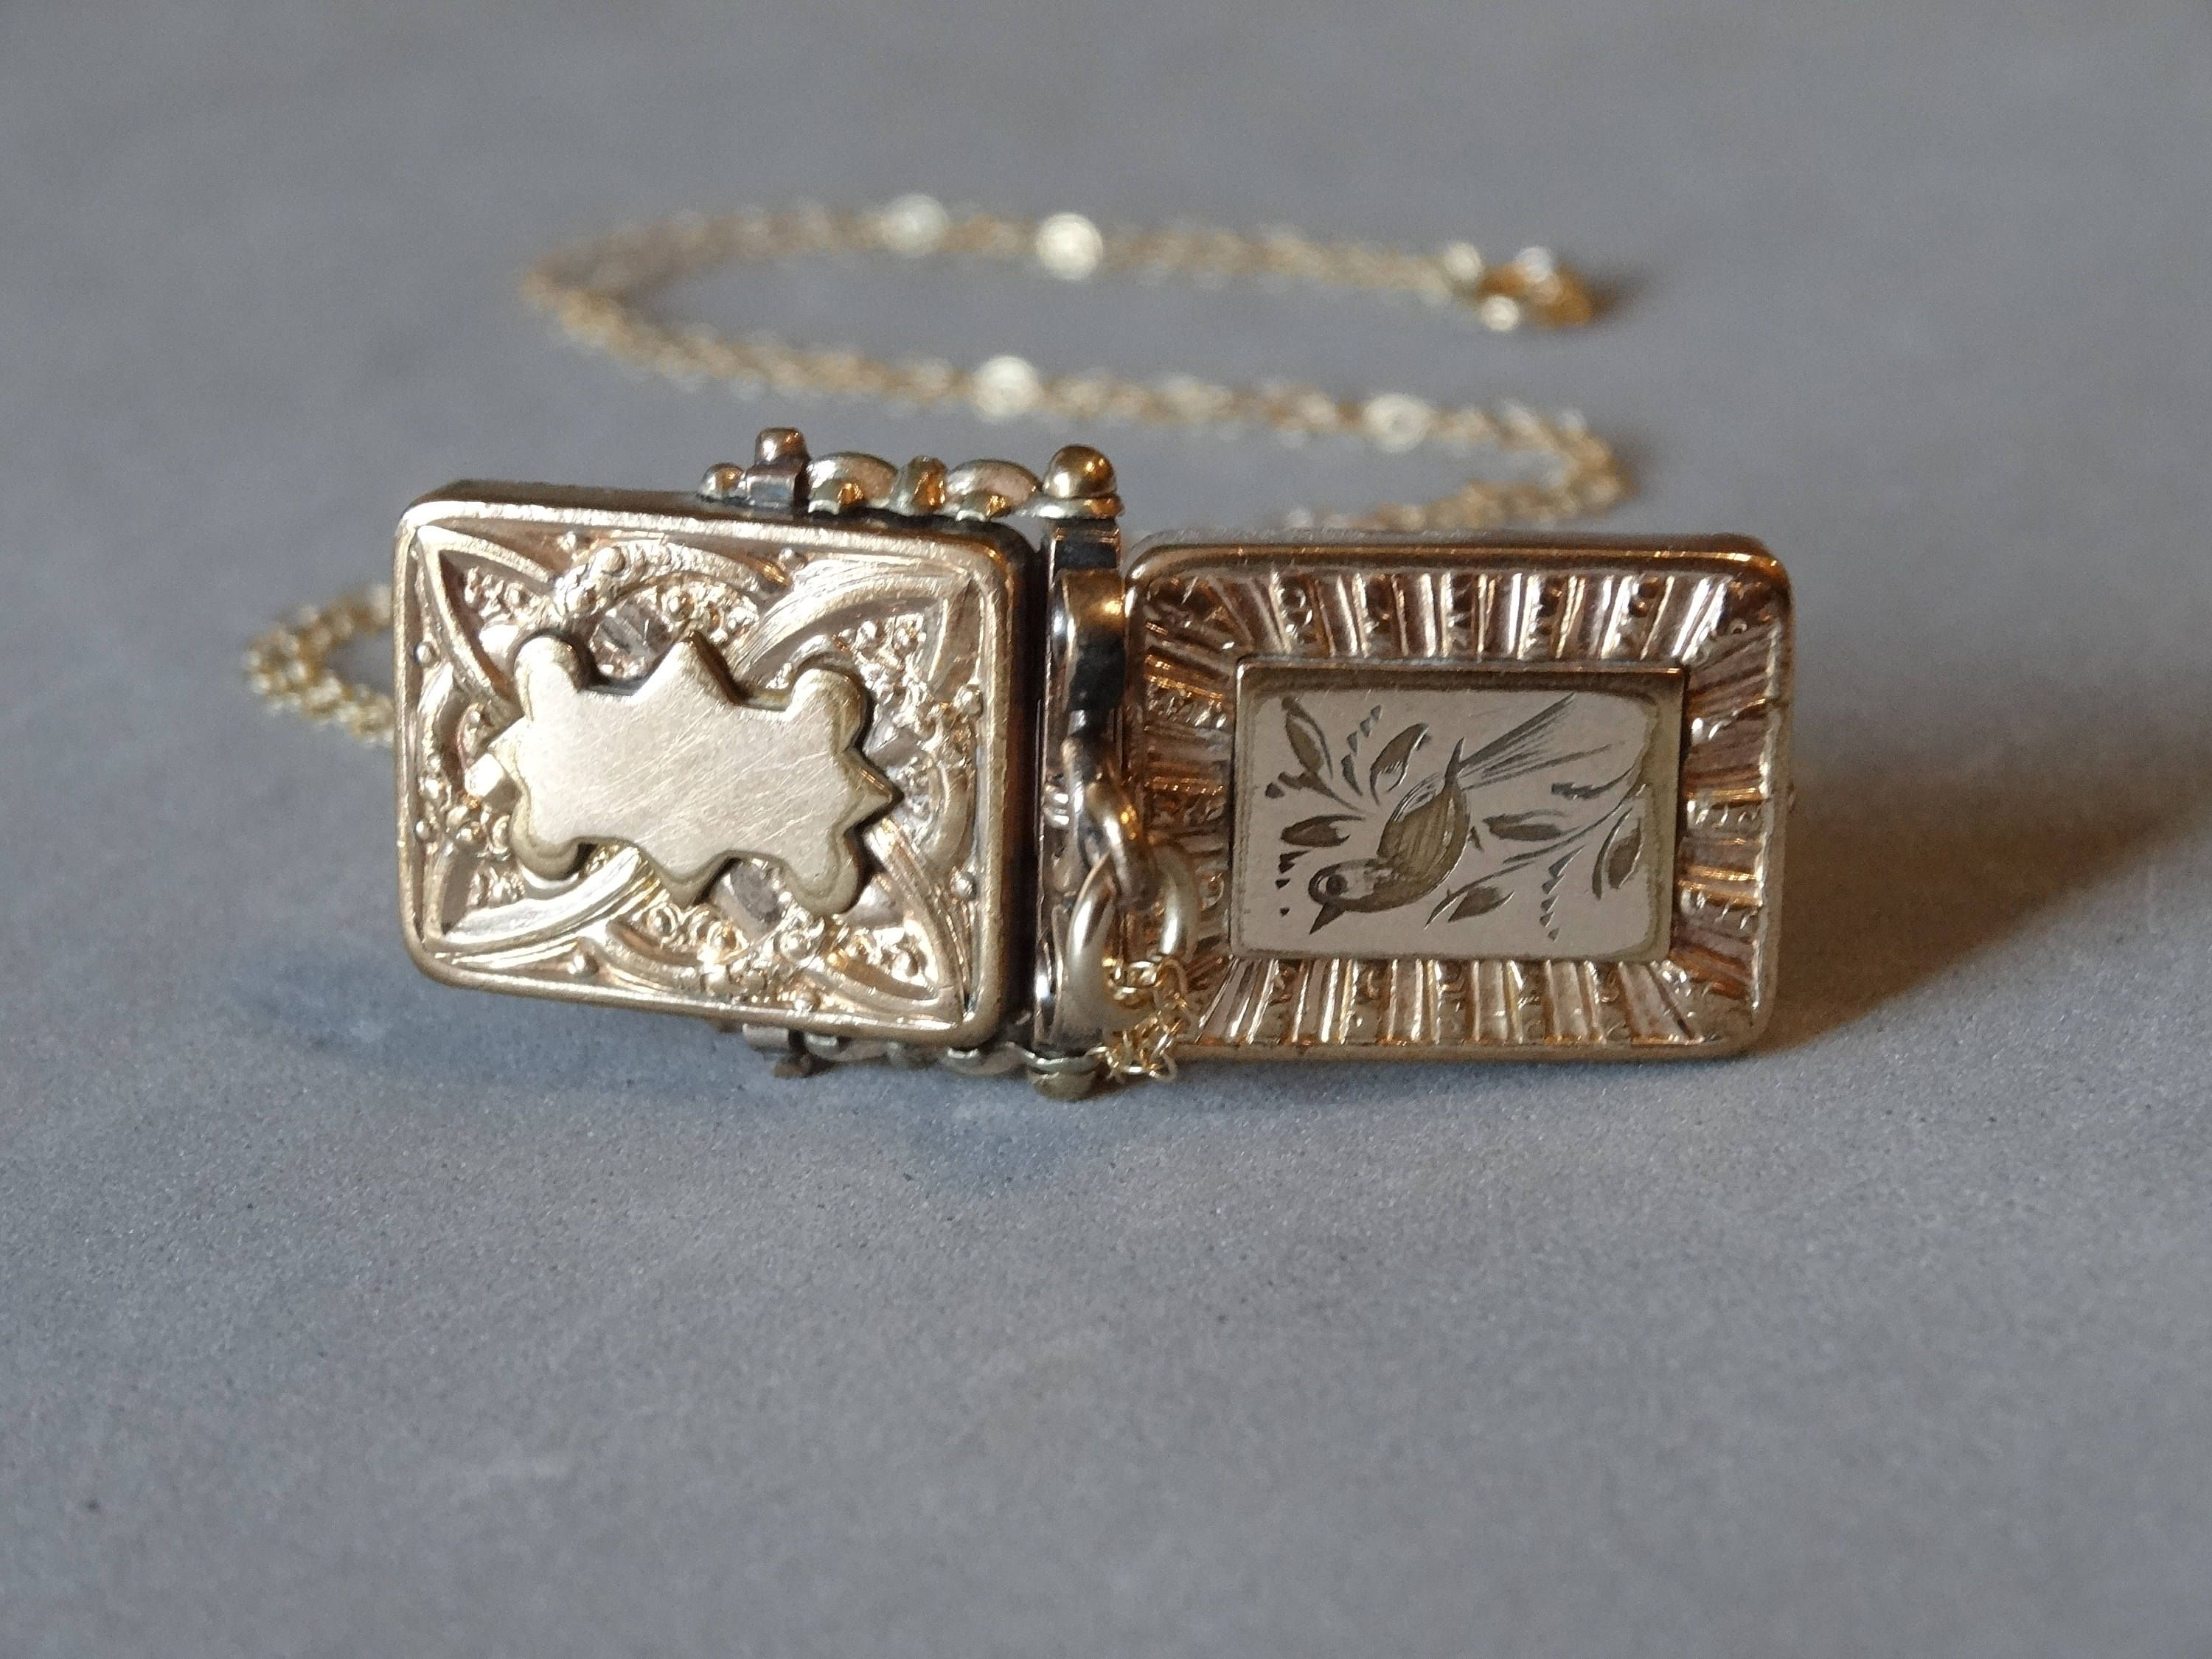 jewelry vintage raw locket floral accents just with square jules and quick antique view gold lockets diamond quartz